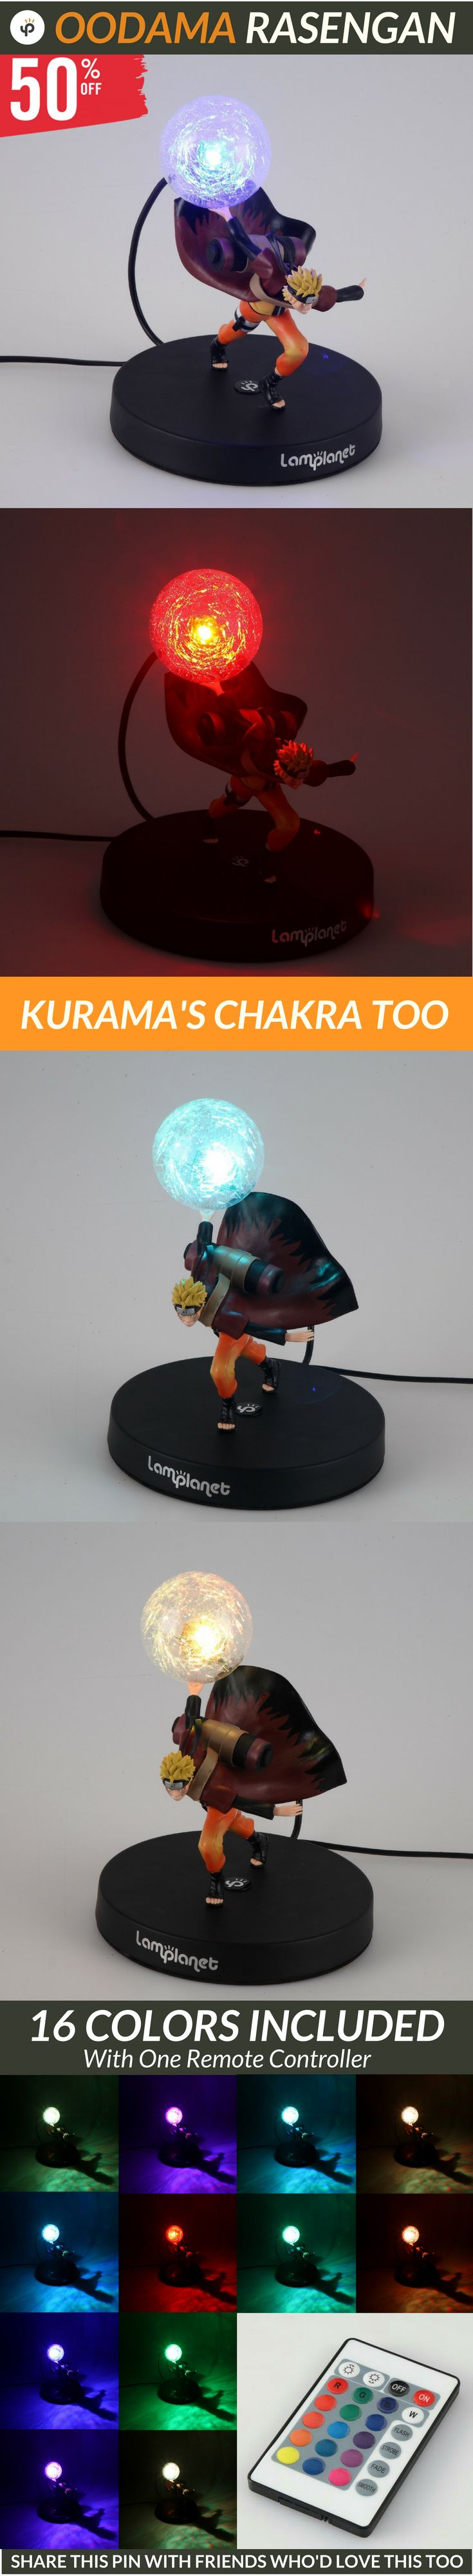 The One & Only Oodama Rasengan Lamp is Here!      Order Yours Now ➡ Only 1000 pcs Will Be Made.